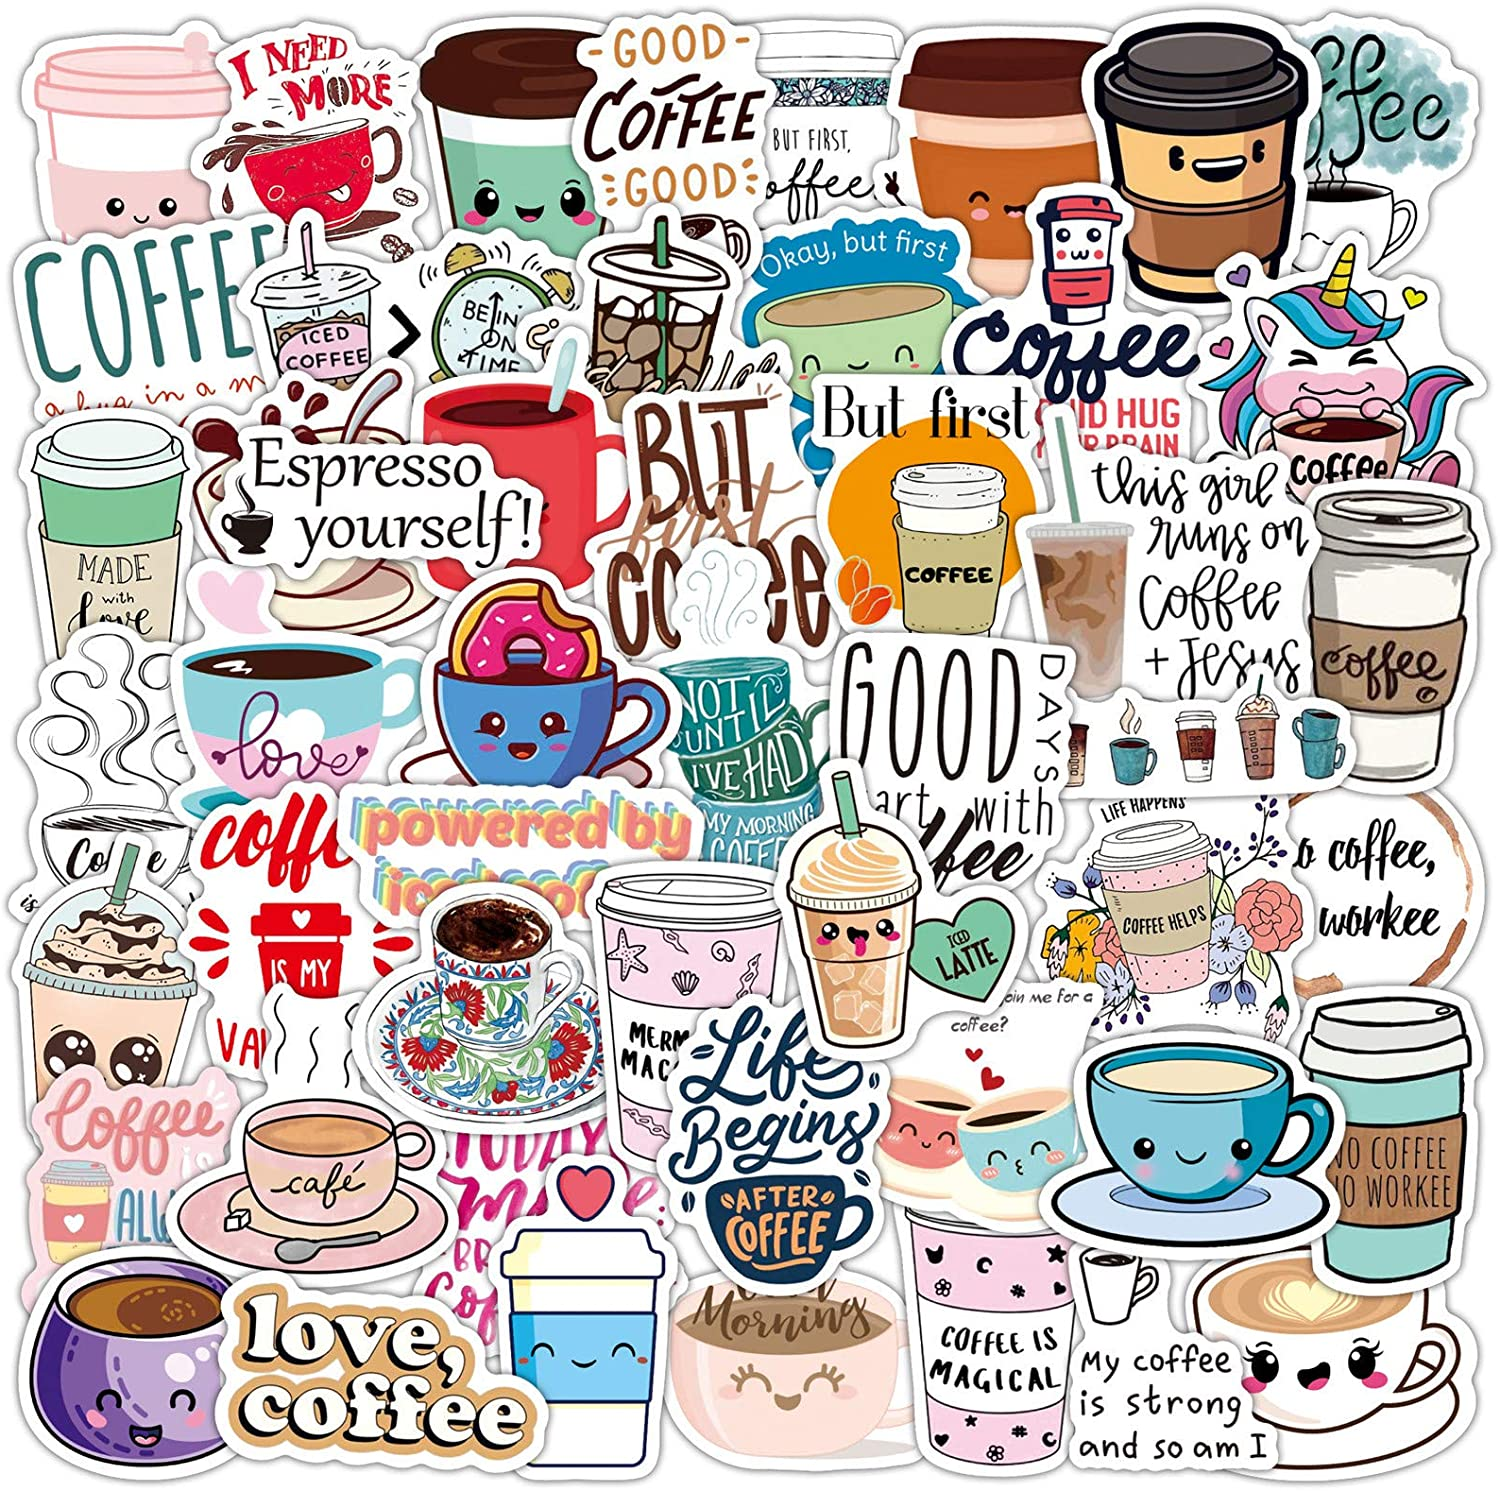 Cute Coffee Stickers Love Coffee Time Precut Anti-UV Stickers 50 Pcs Laptop Stickers for Kids Girls Teens Water Bottles Bicycle Skateboard Luggage Decal (Coffee)